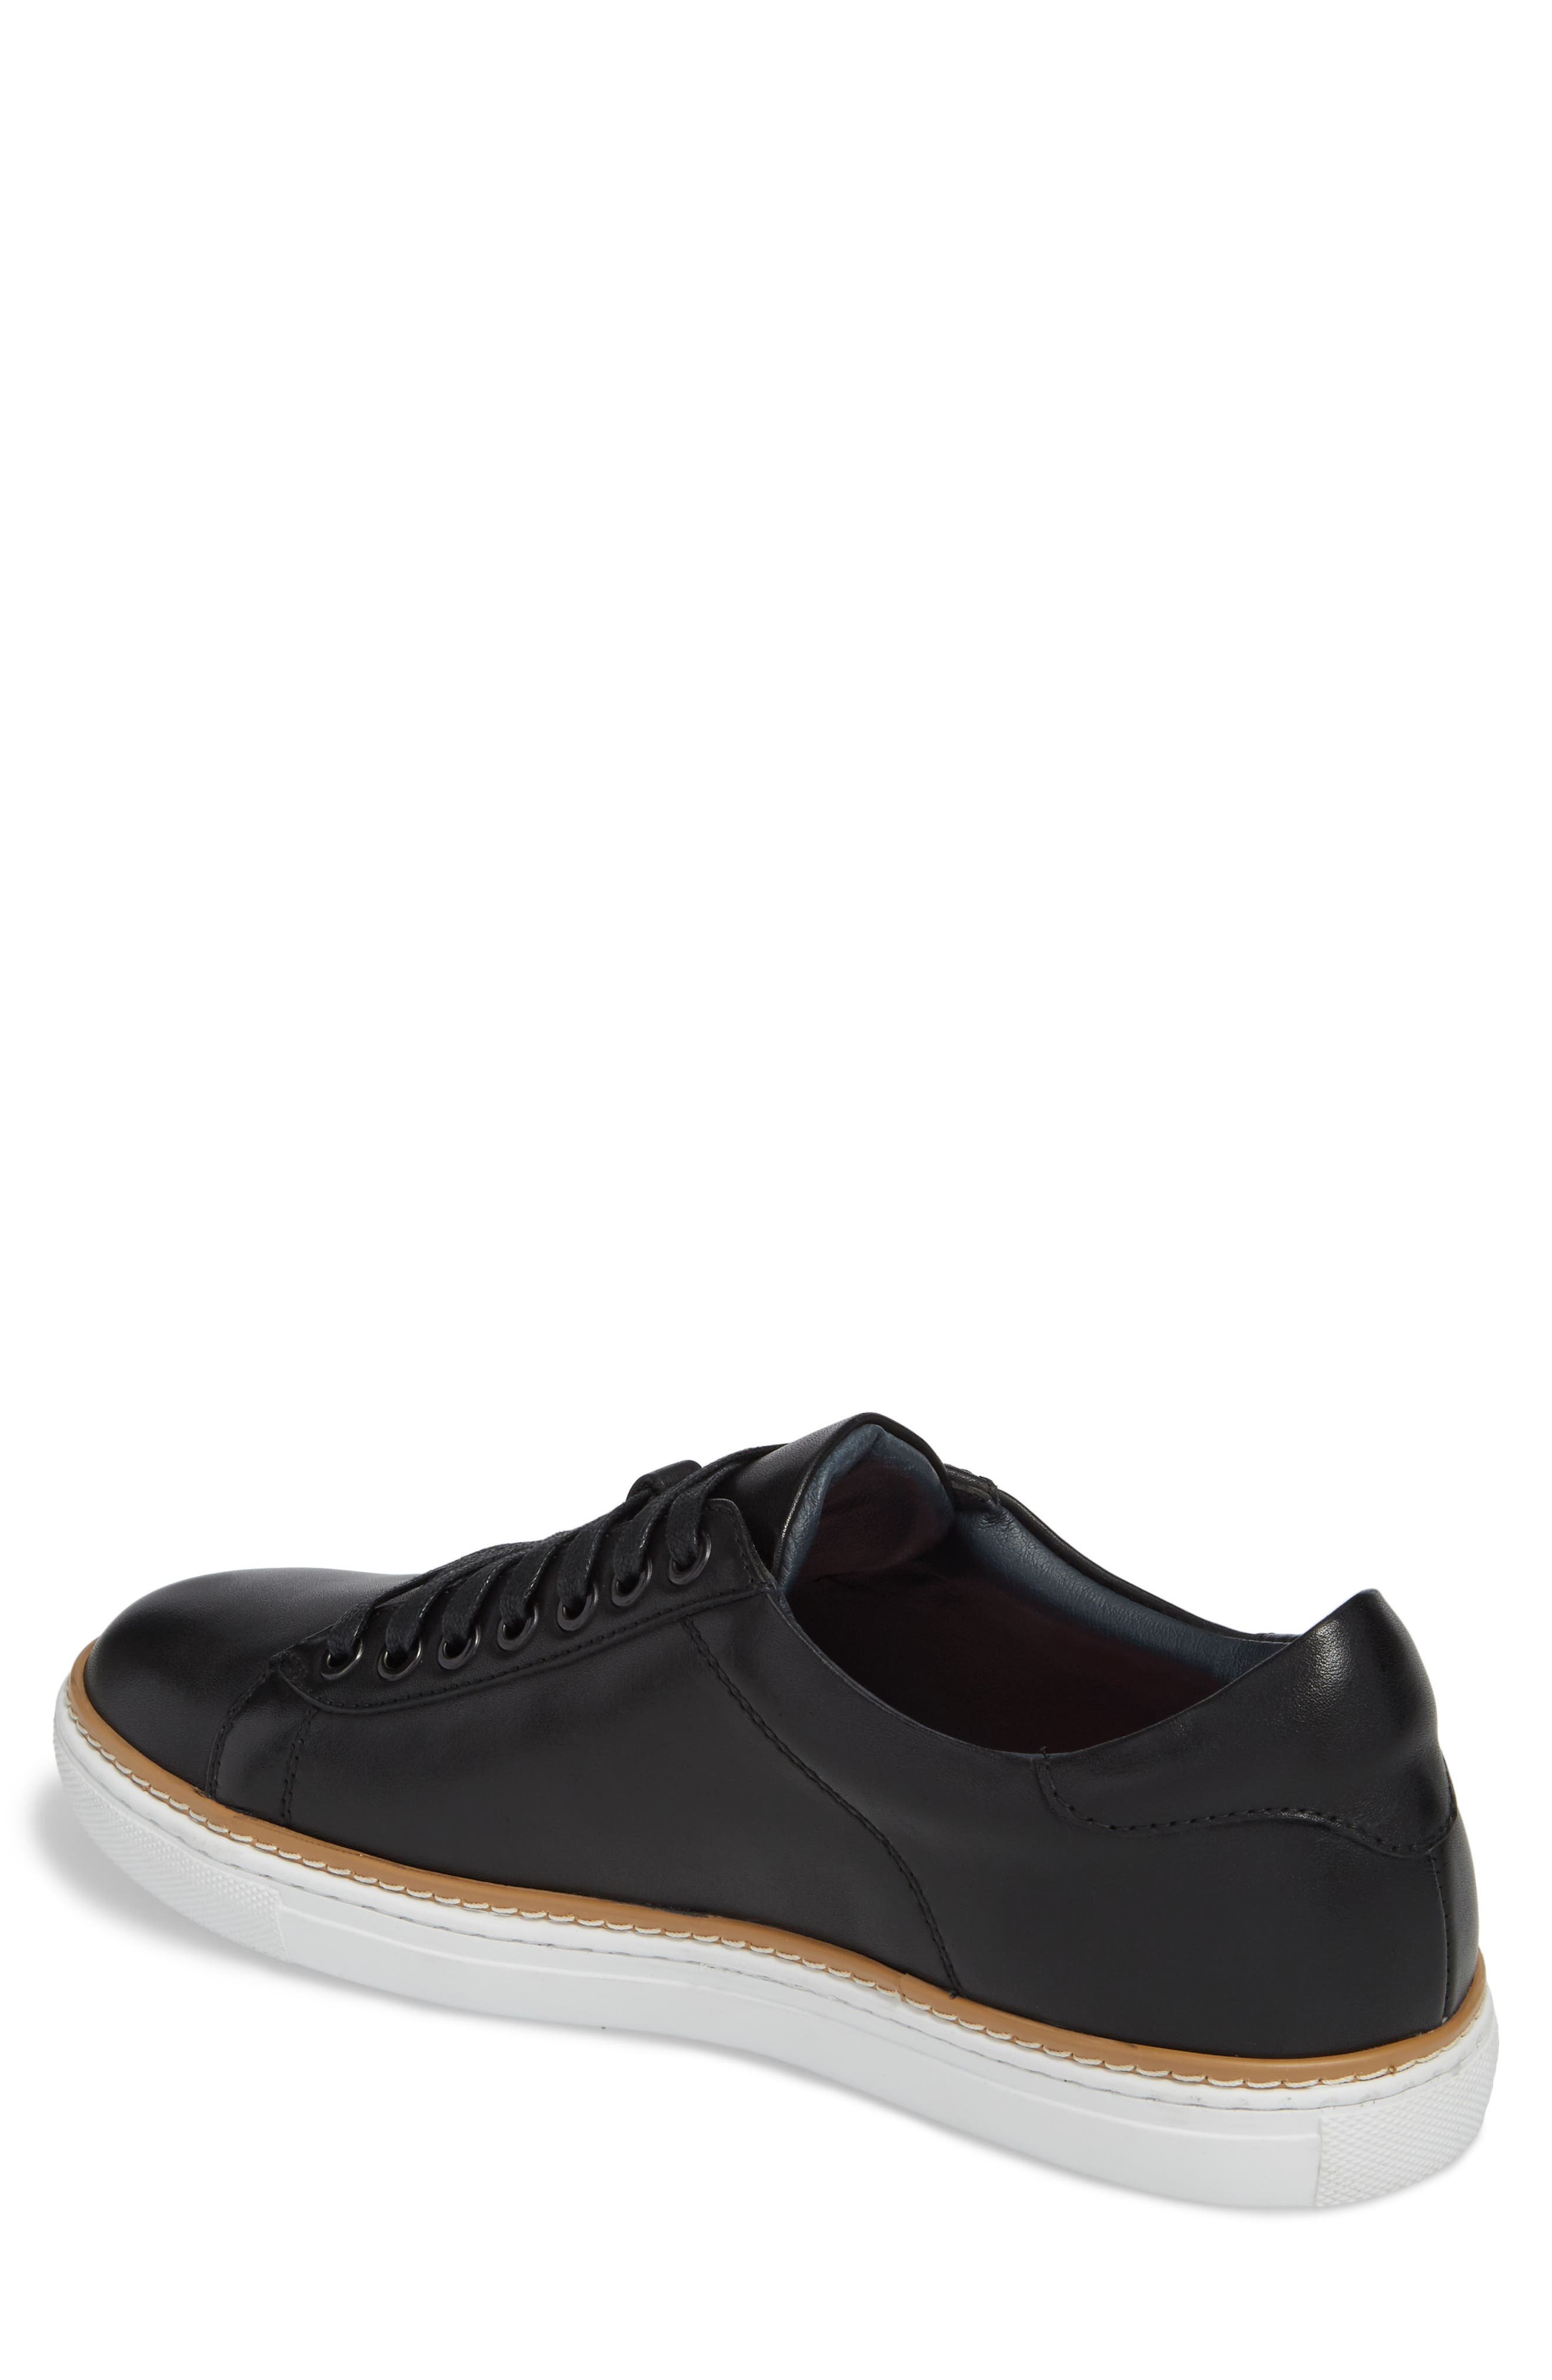 Alternate Image 2  - English Laundry Juniper Low Top Sneaker (Men)